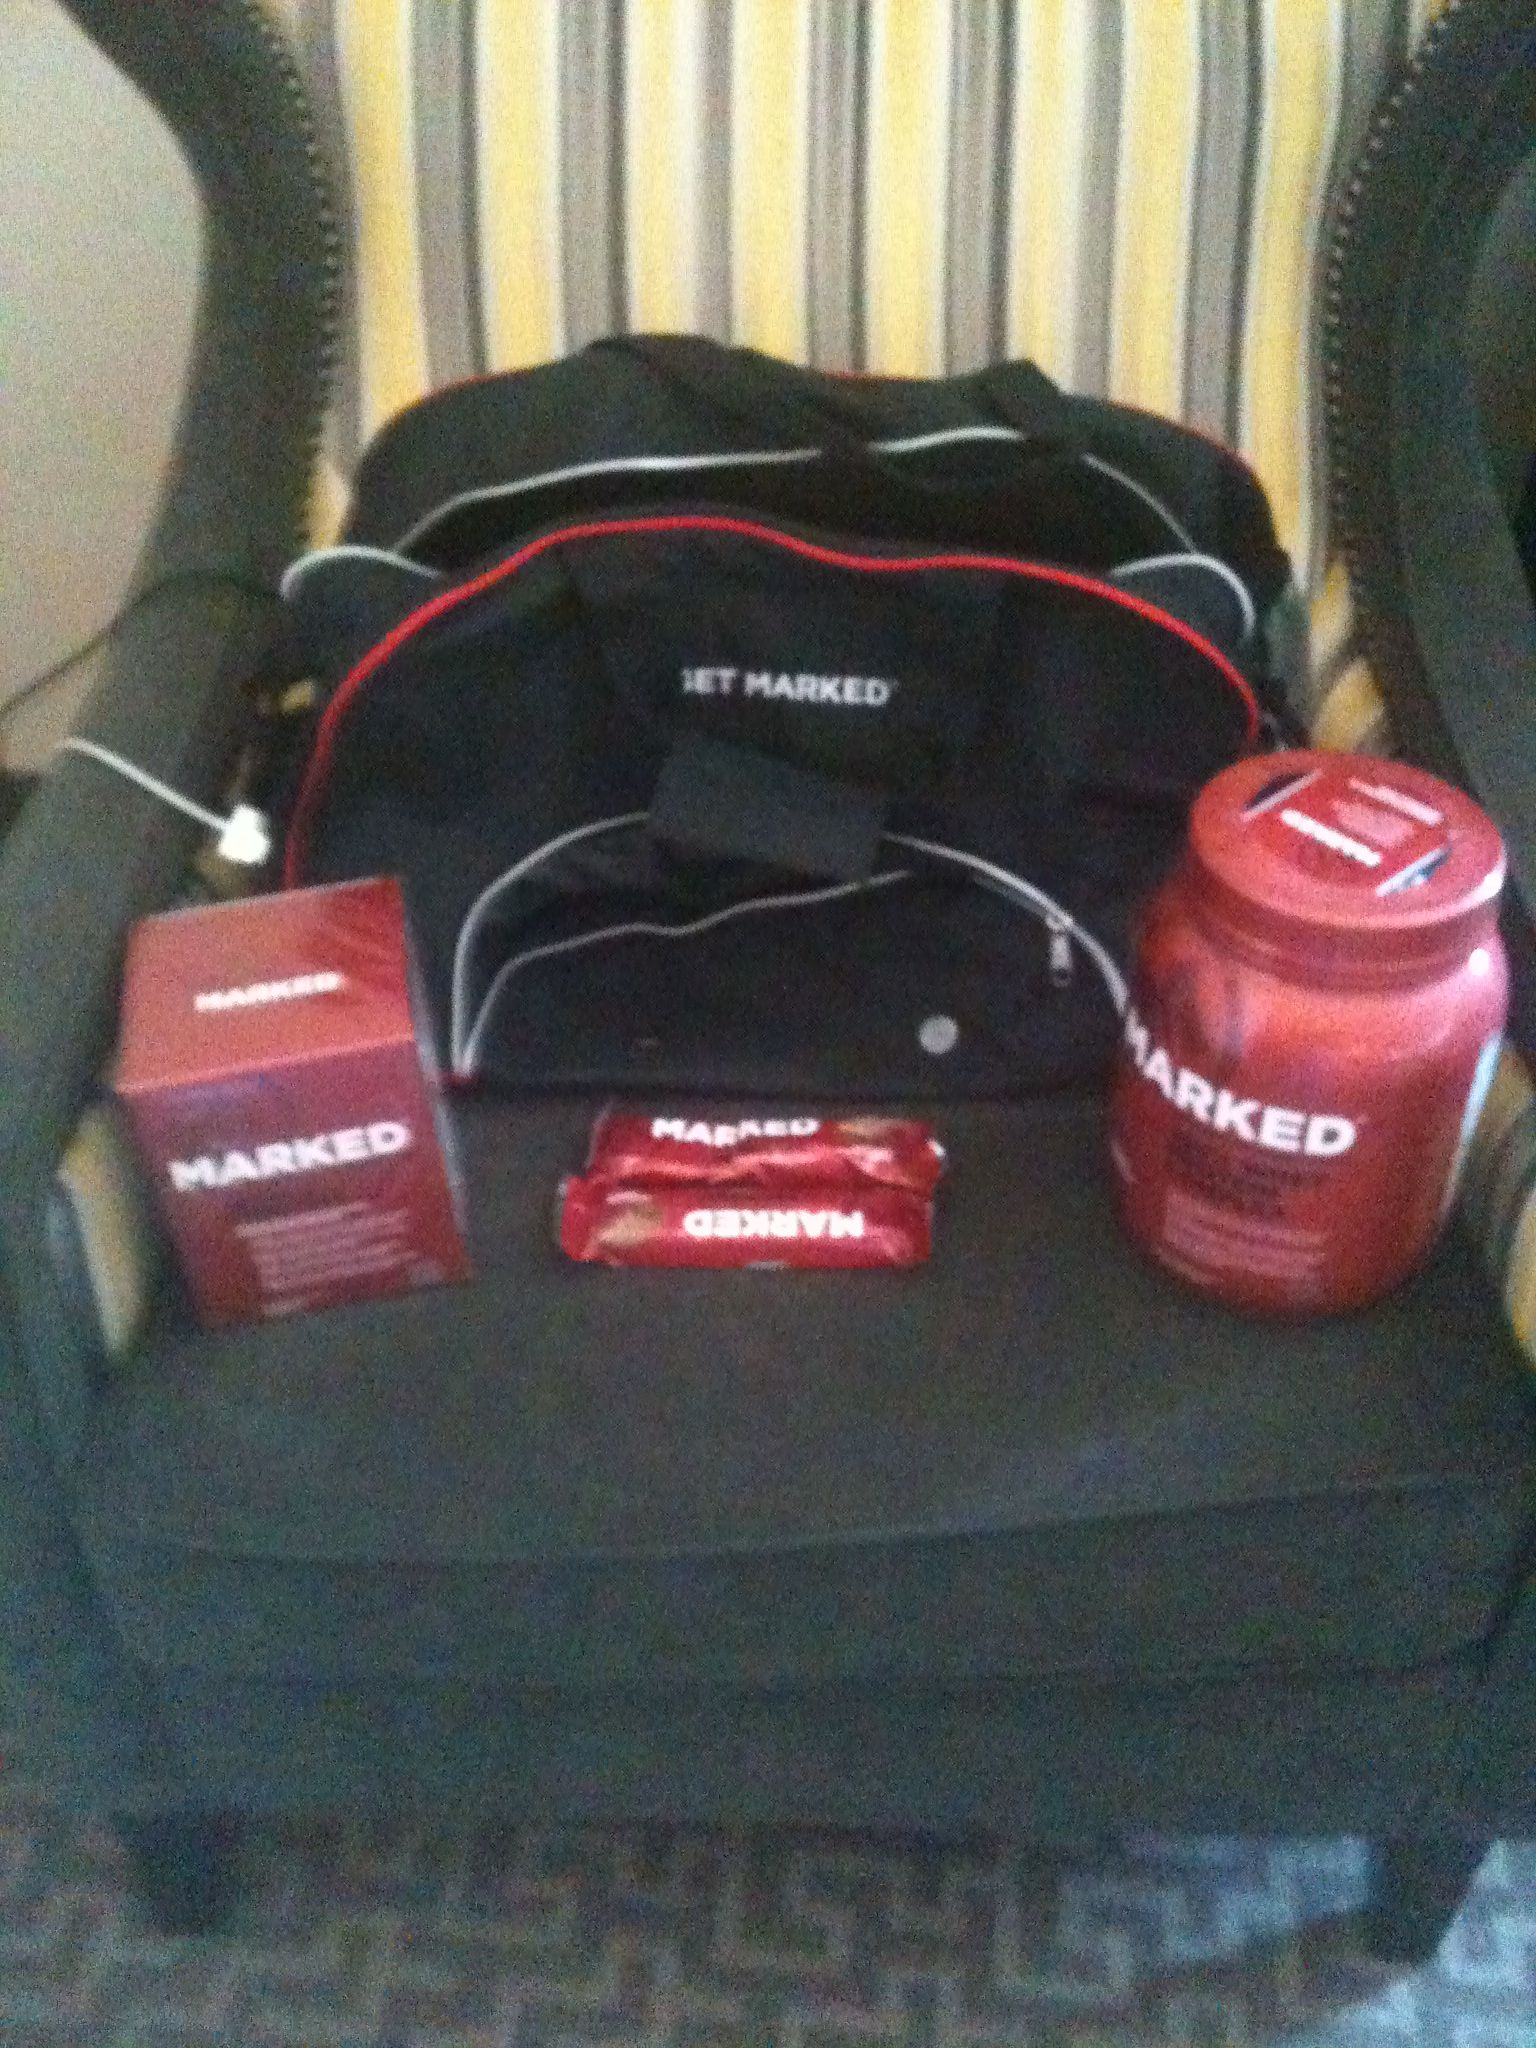 Marked nutrition products via klout #GetMARKED #fitness